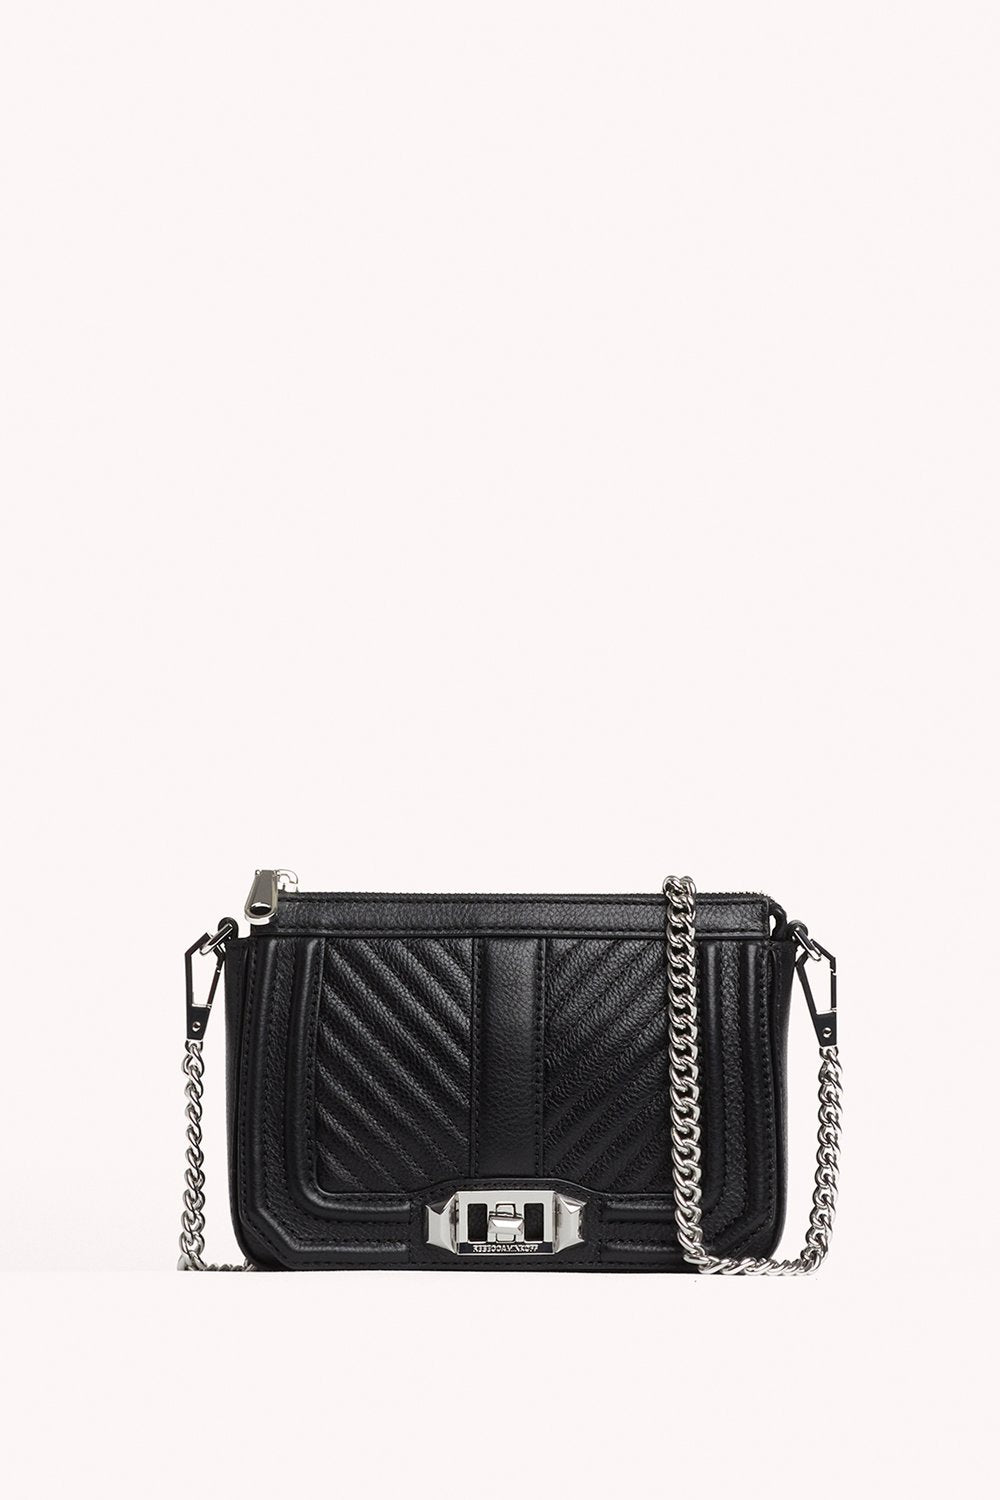 CHEVRON QUILTED MINI LOVE SHOULDER BAG